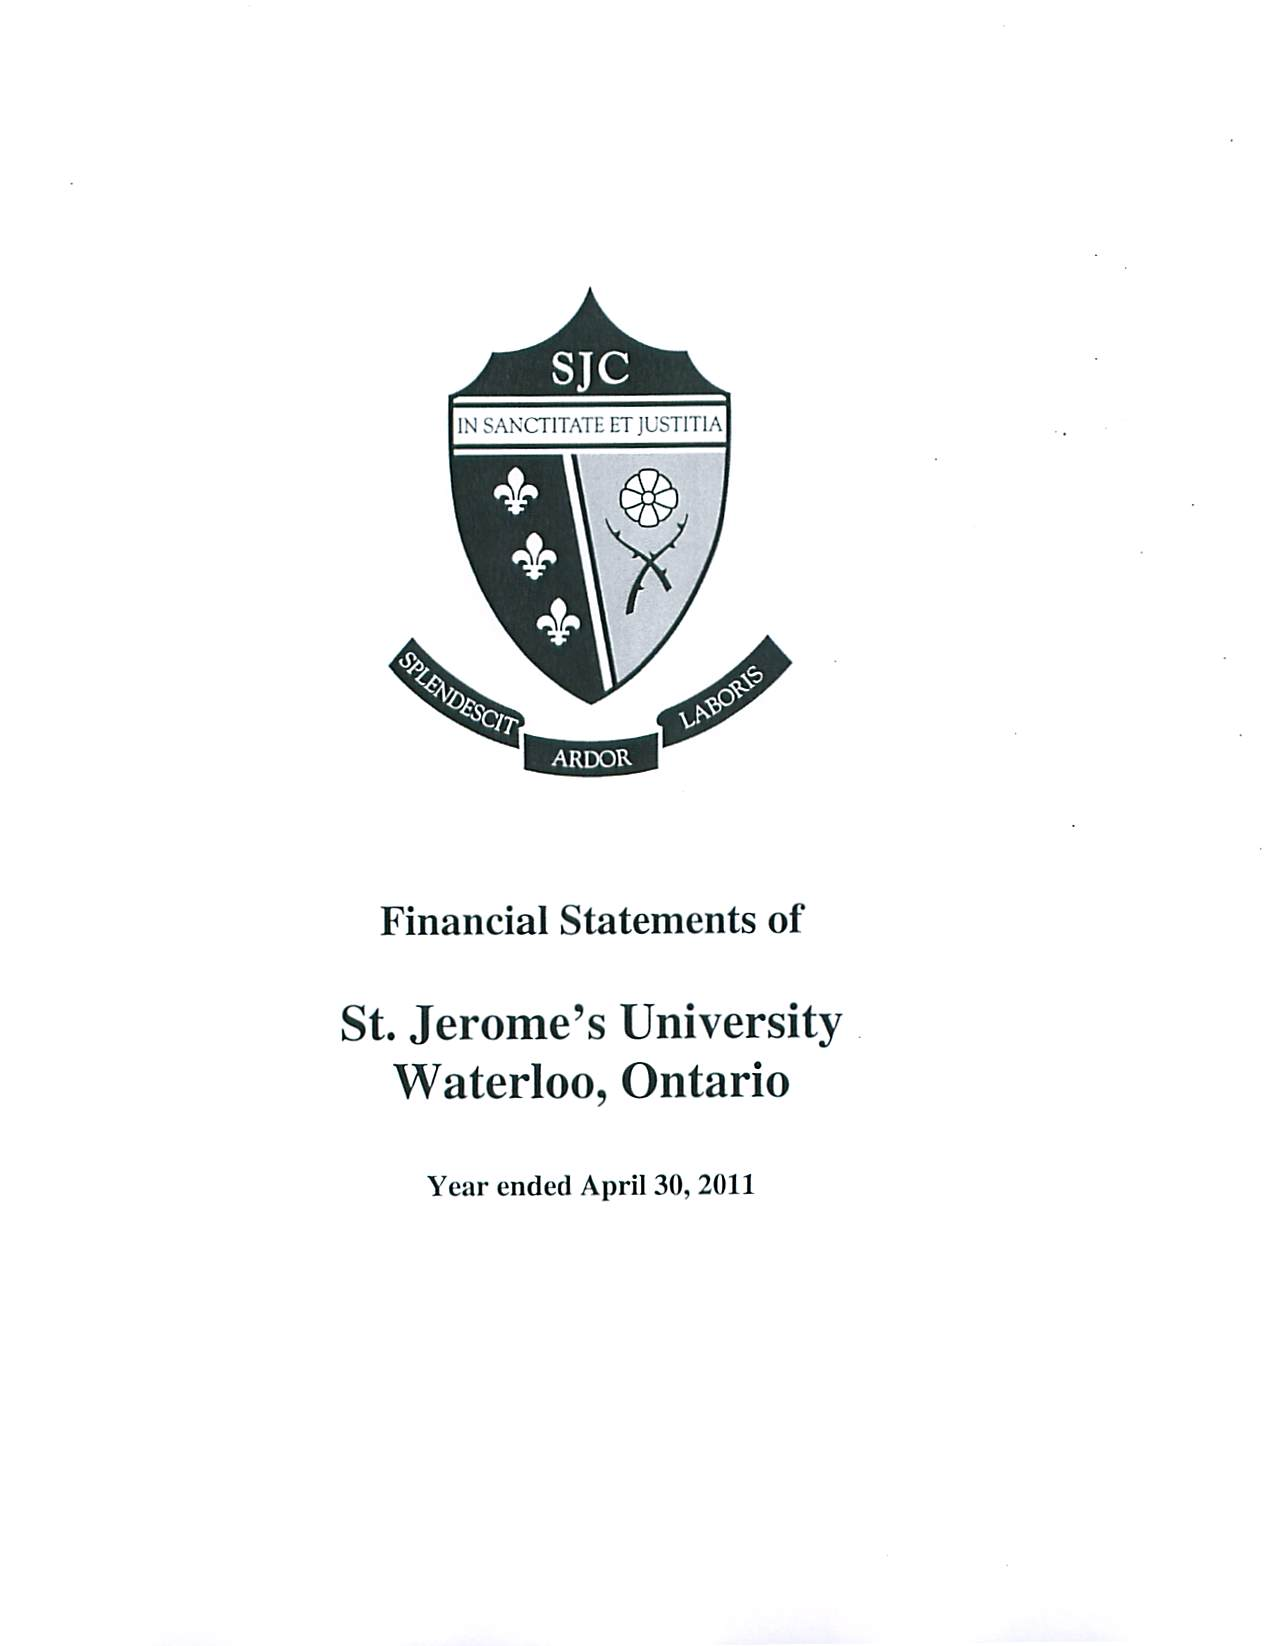 SJU Financial Statements Ending 2011